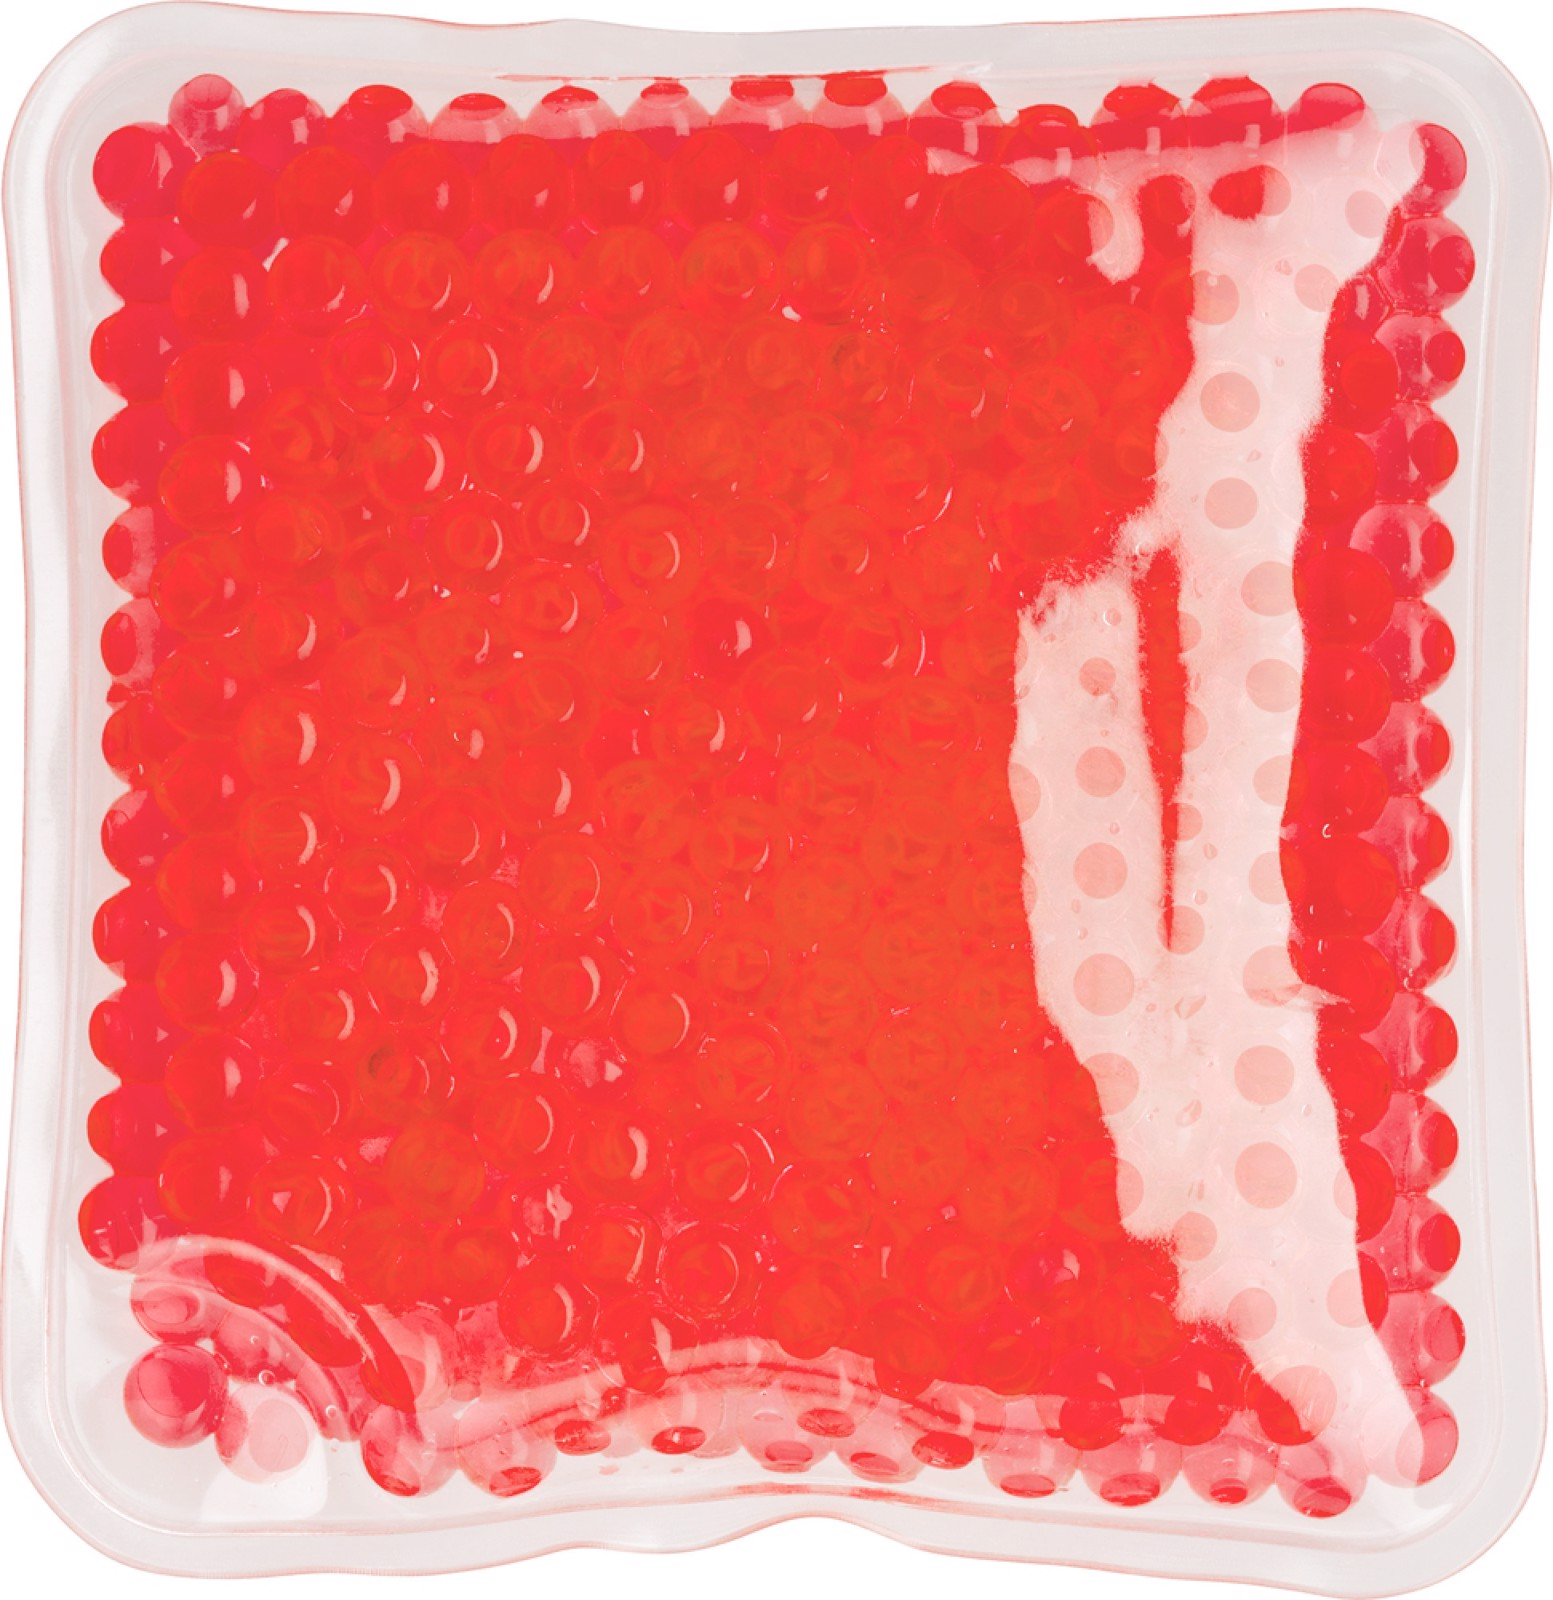 PVC hot/cold pack - Red